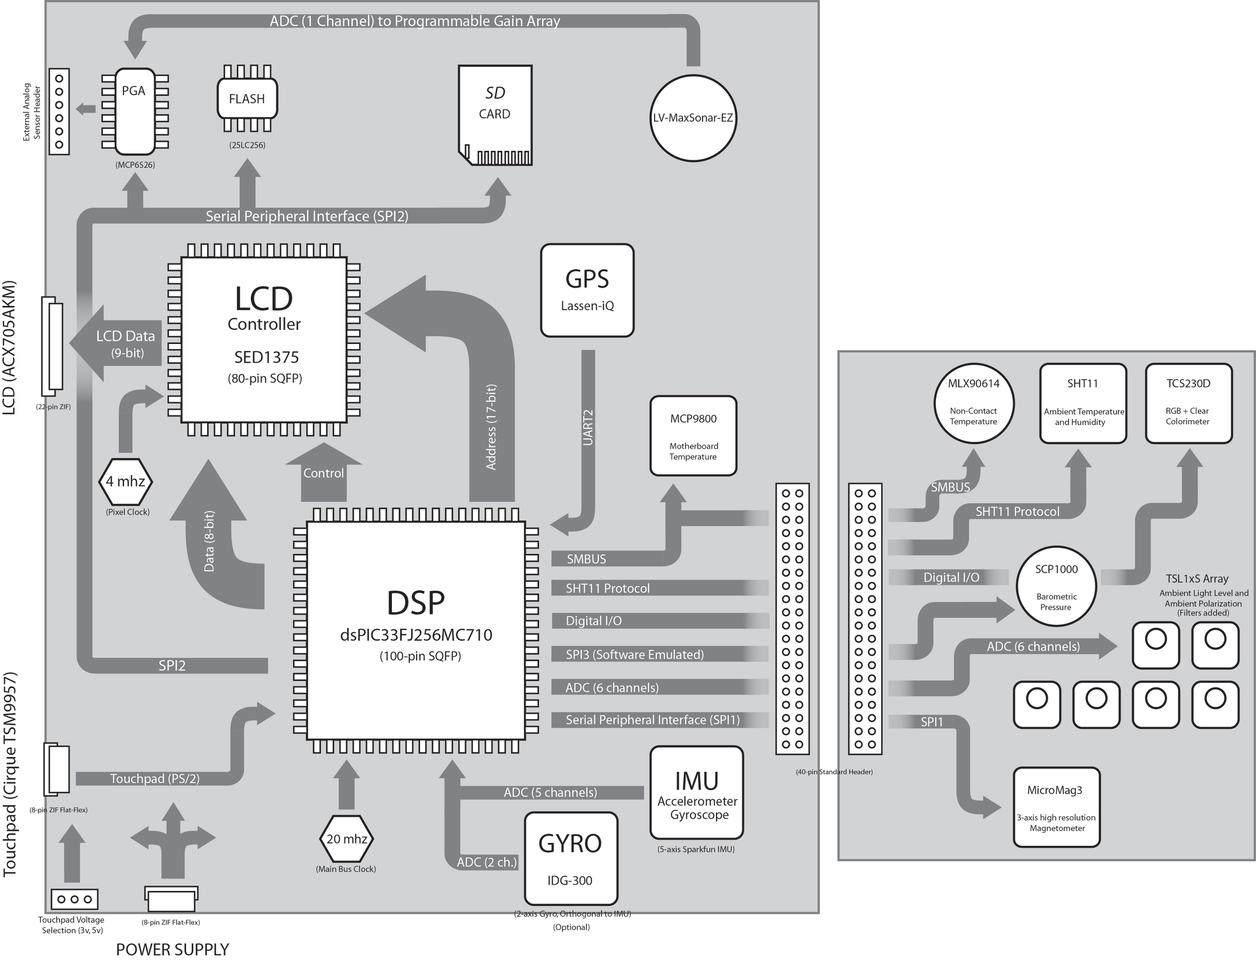 A flow diagram of the Science Tricorder Mark 1, showing the major components and data paths